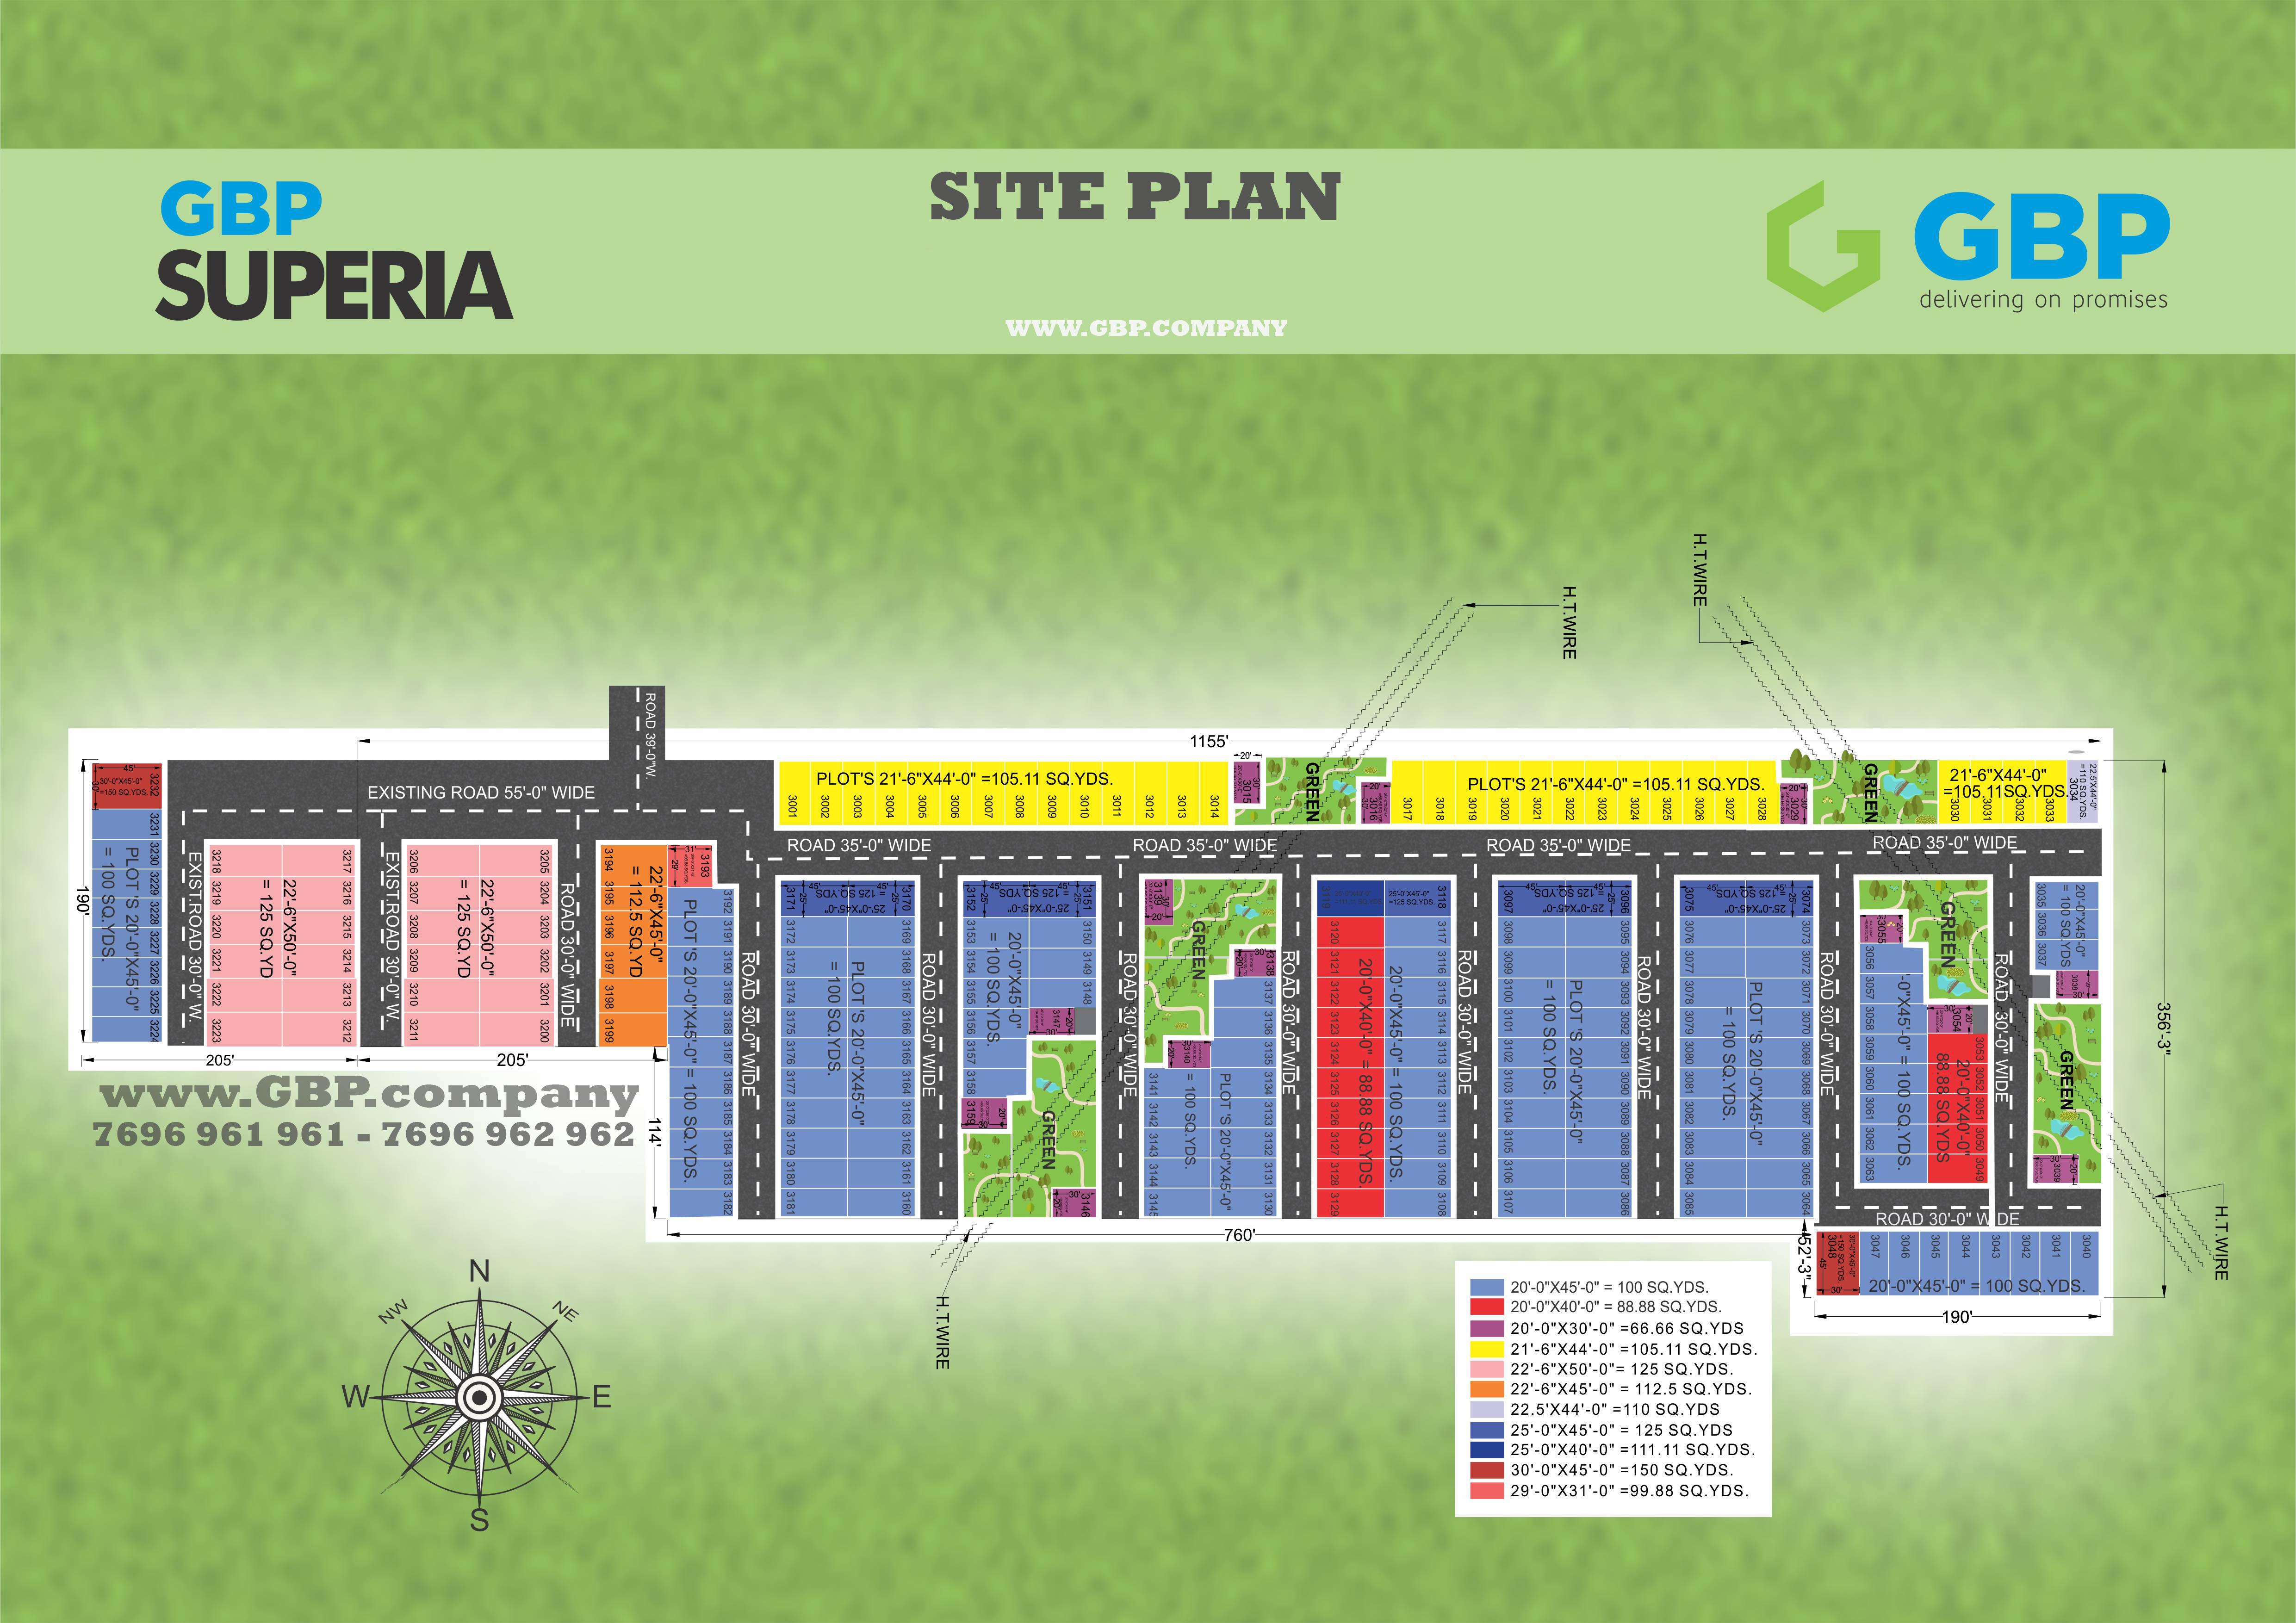 gbpsuperia official map